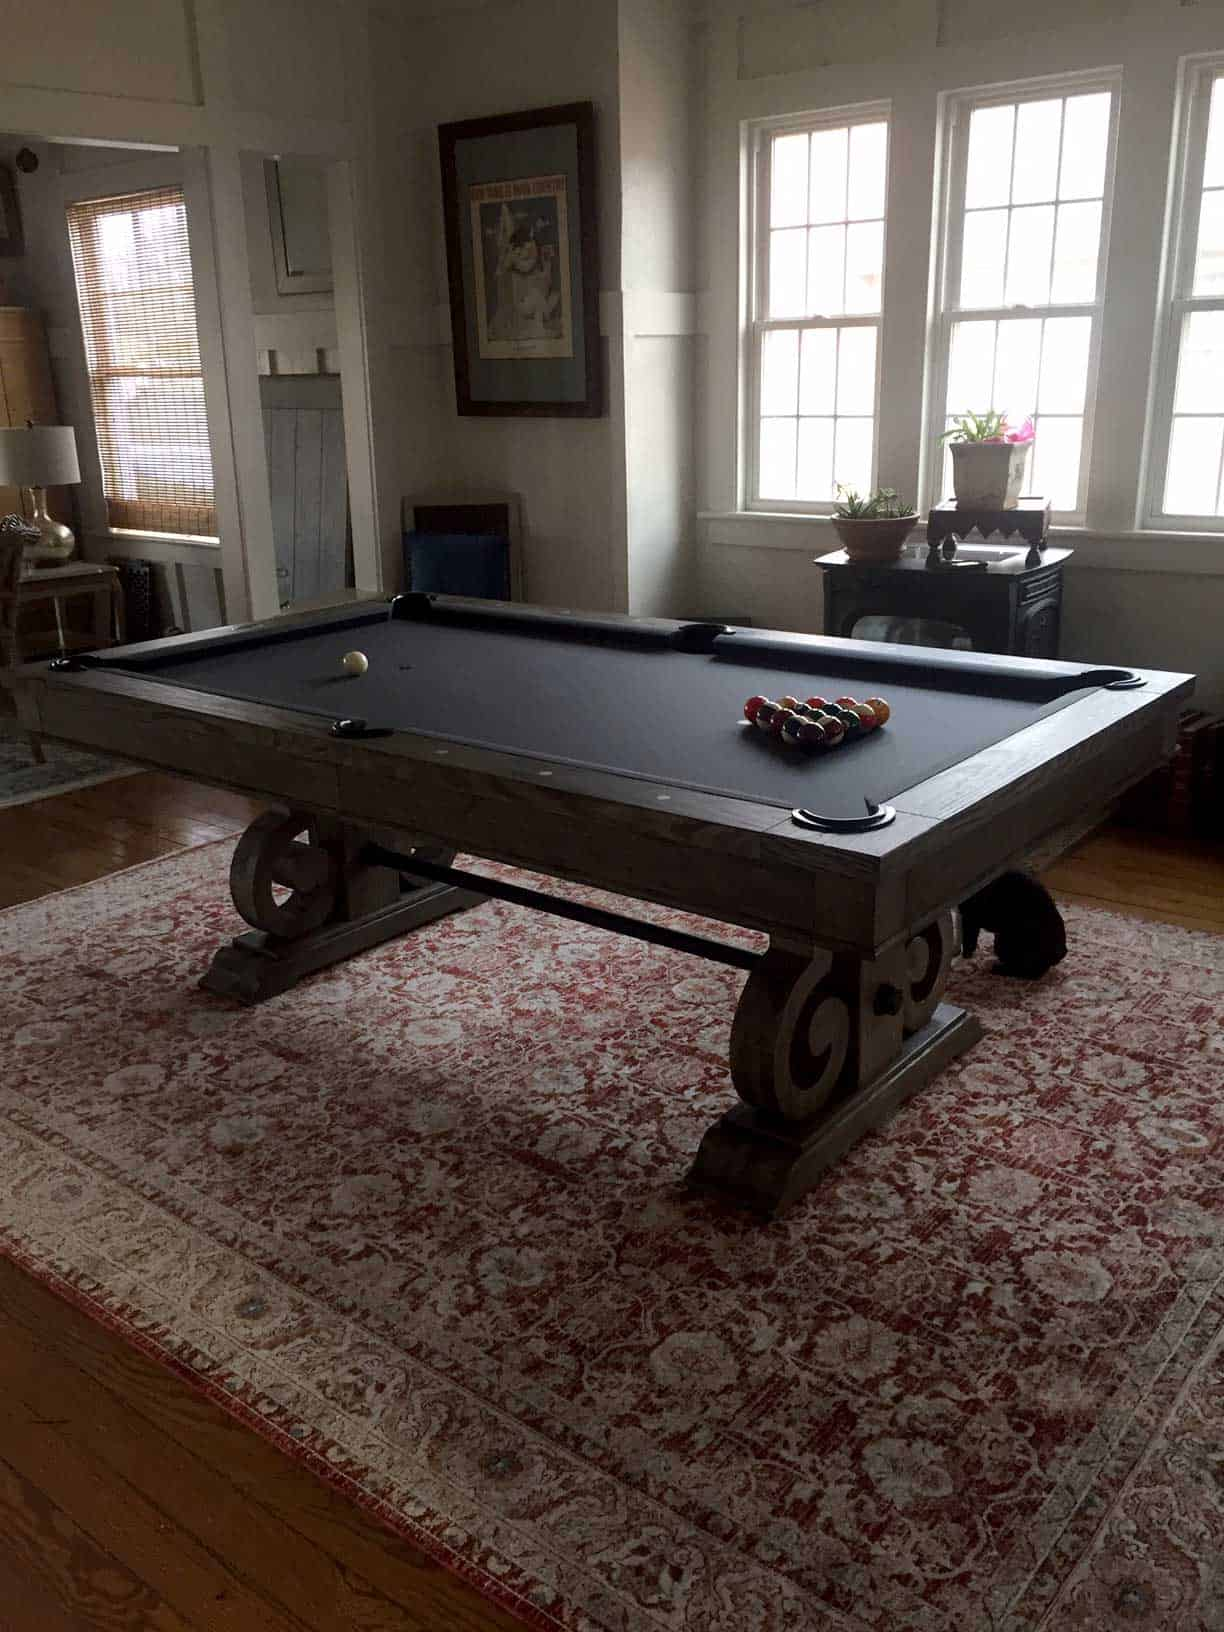 blue pool table on a red rug